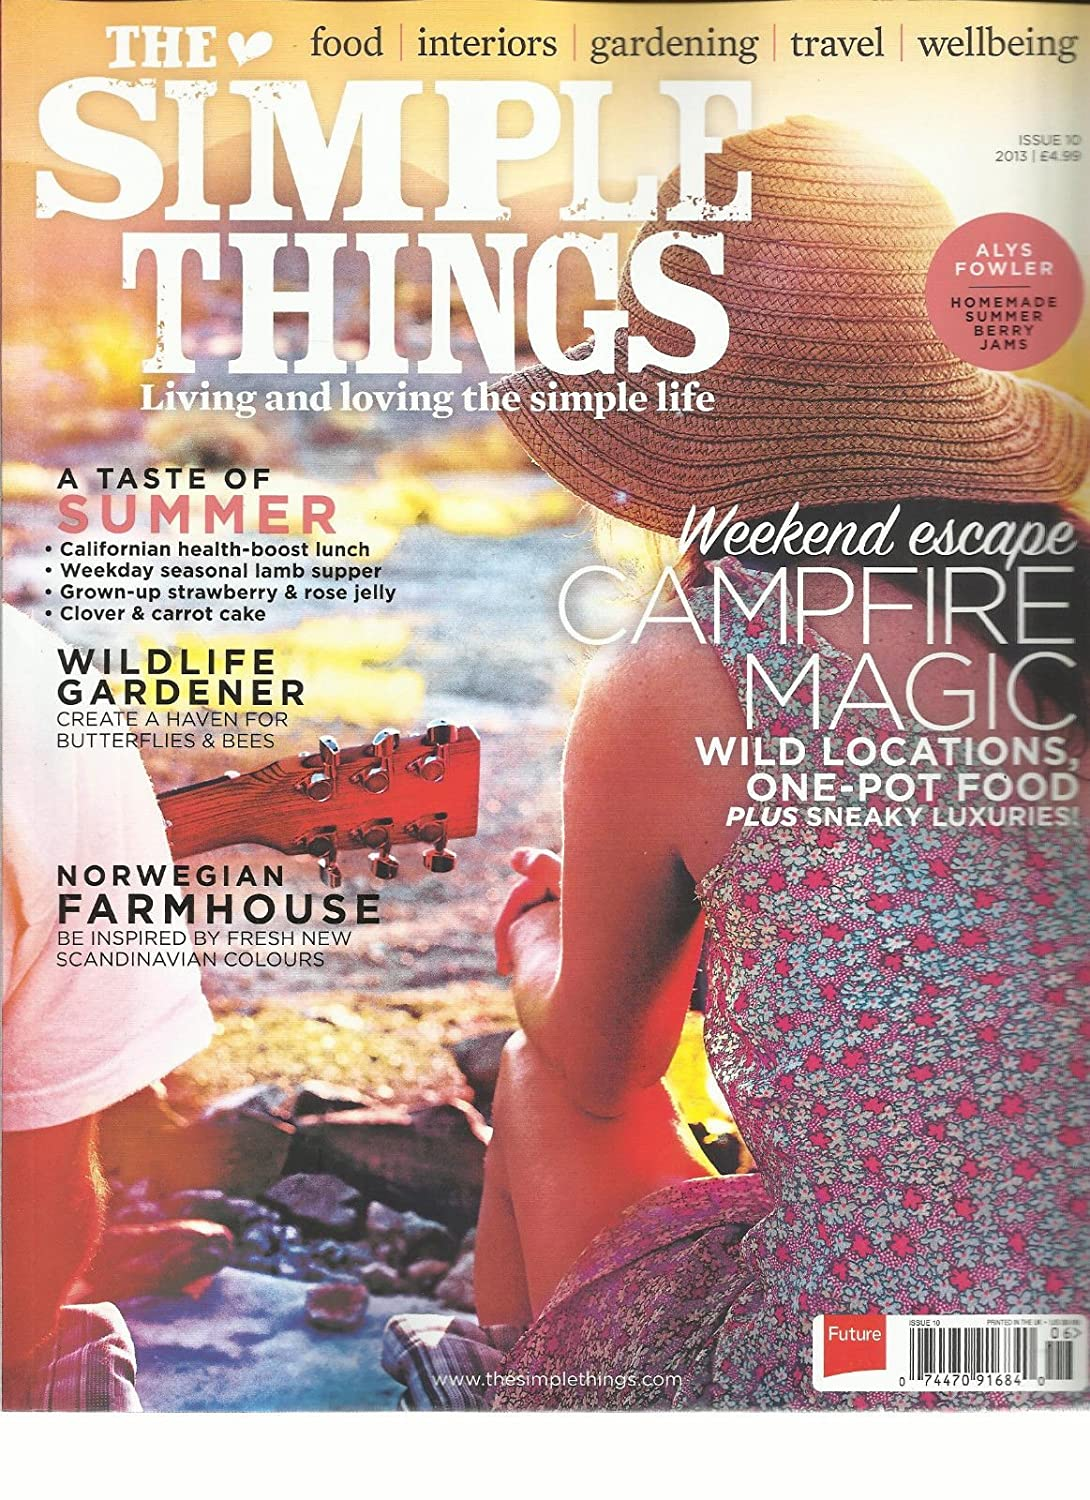 THE SIMPLE THINGS, ISSUE, 10 (LIVING AND LOVING THE SIMPLE LIFE) WEEKEND ESCAPE s3457